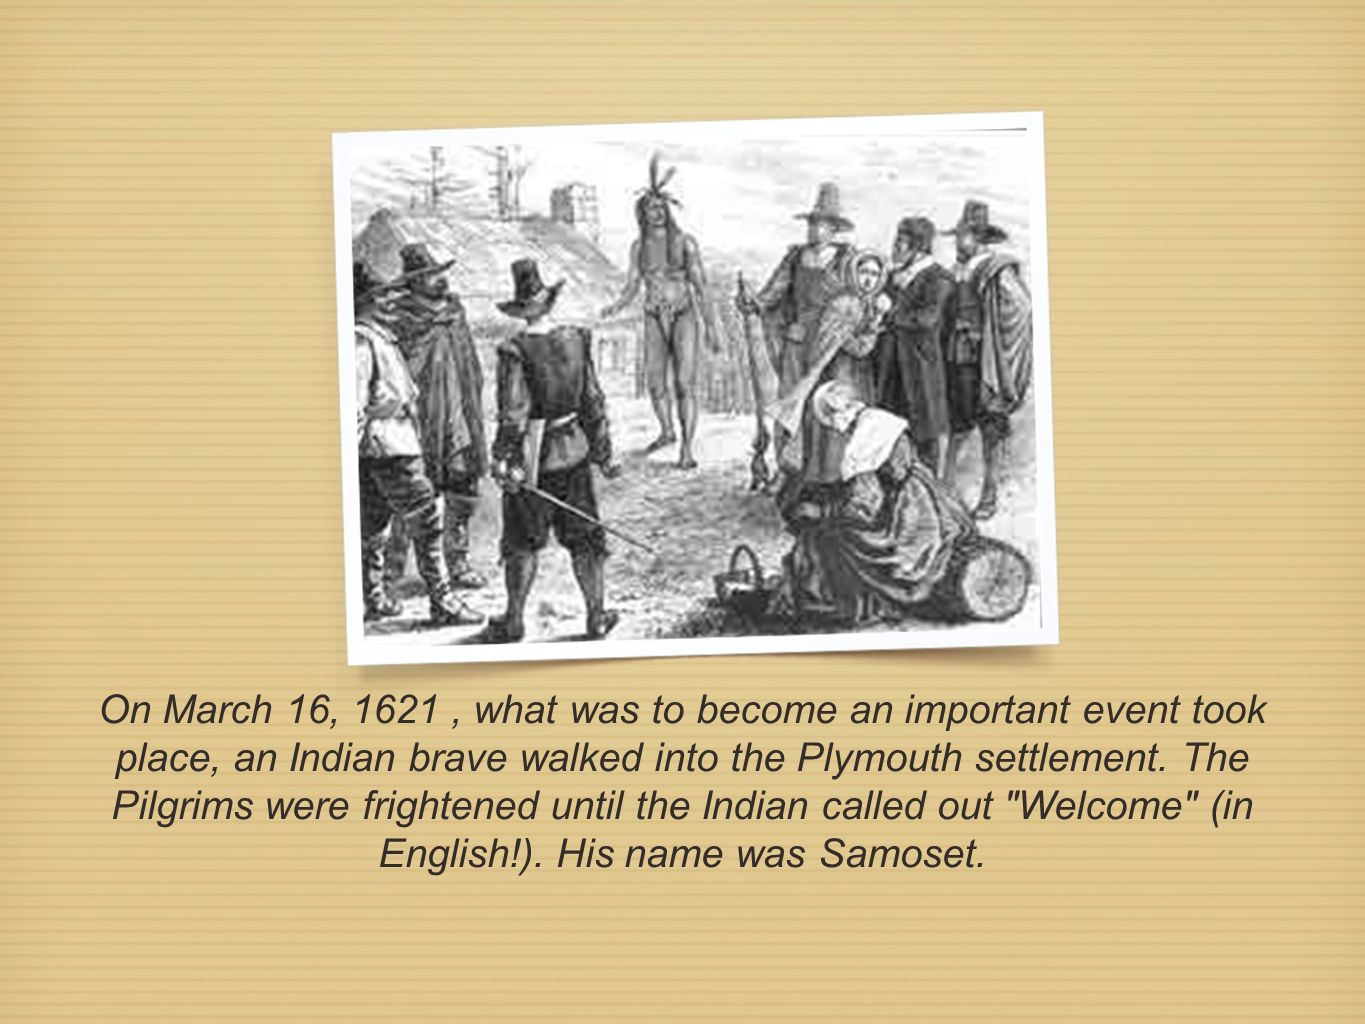 On March 16, 1621, what was to become an important event took place, an Indian brave walked into the Plymouth settlement. The Pilgrims were frightened